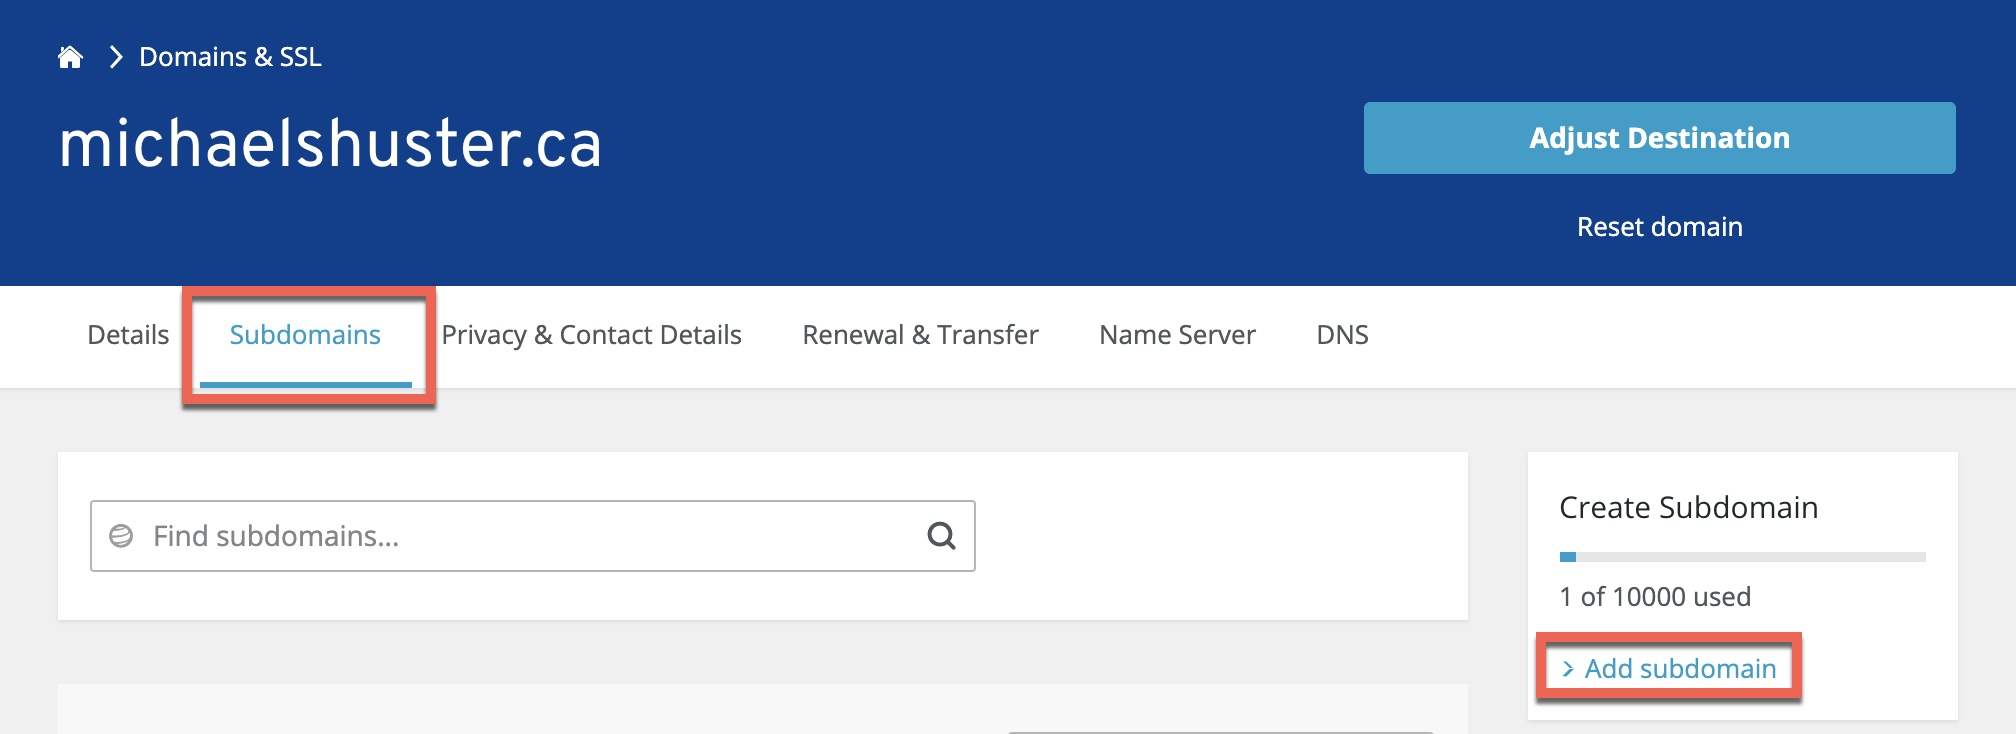 Creating DNS subdomain in IONOS 1&1 portal for Citrix ADC GSLB domain delegation.